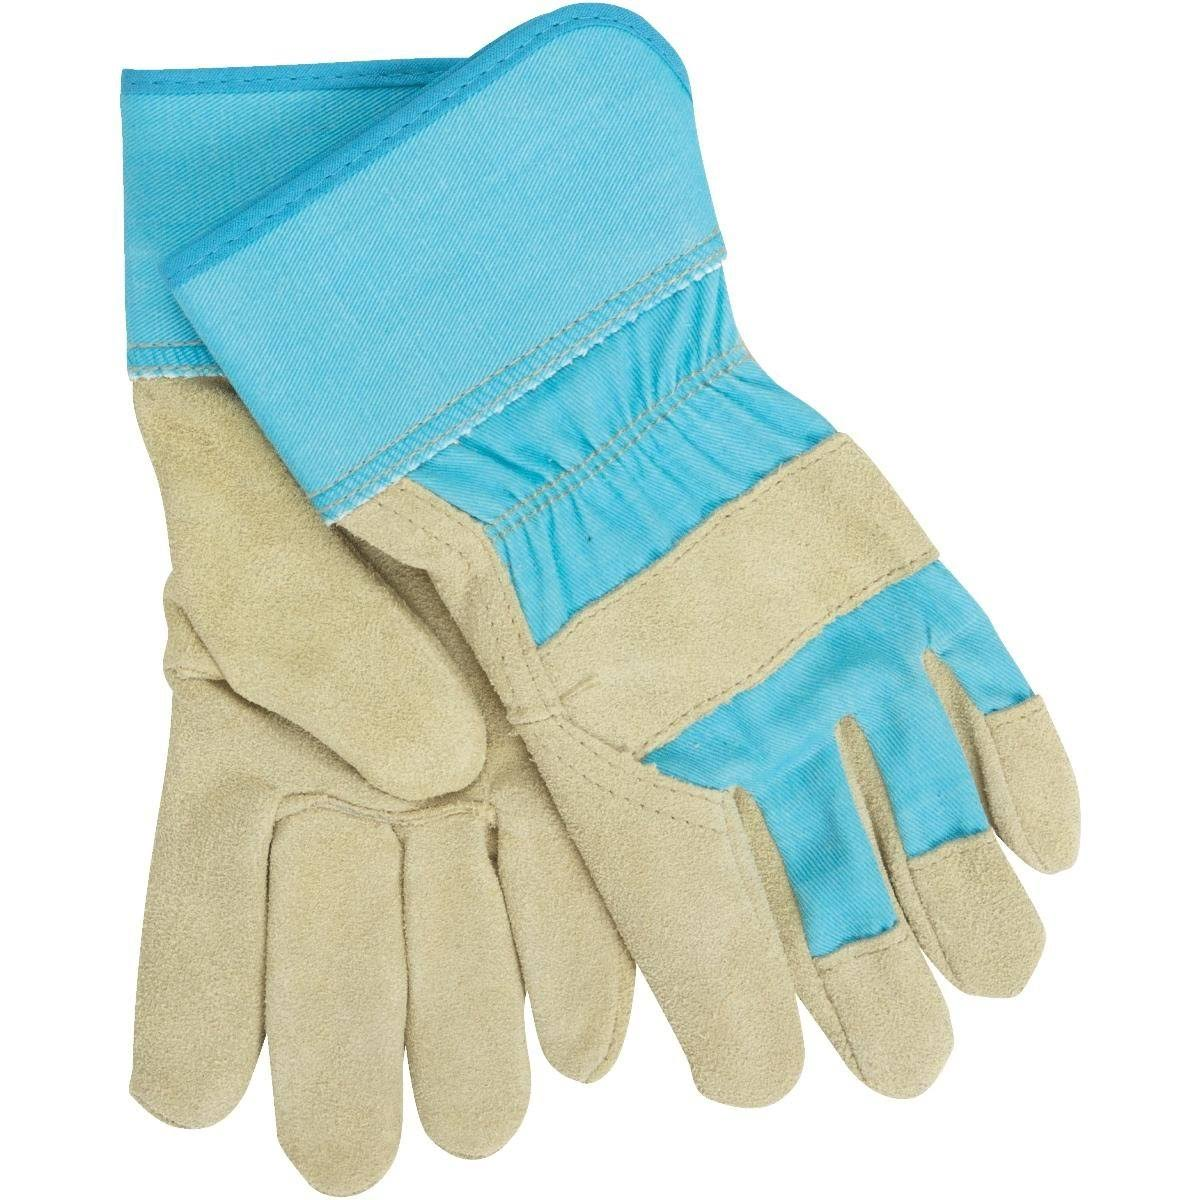 West Chester Protective Gear Dirty Work Women's Leather Work Gloves - Blue